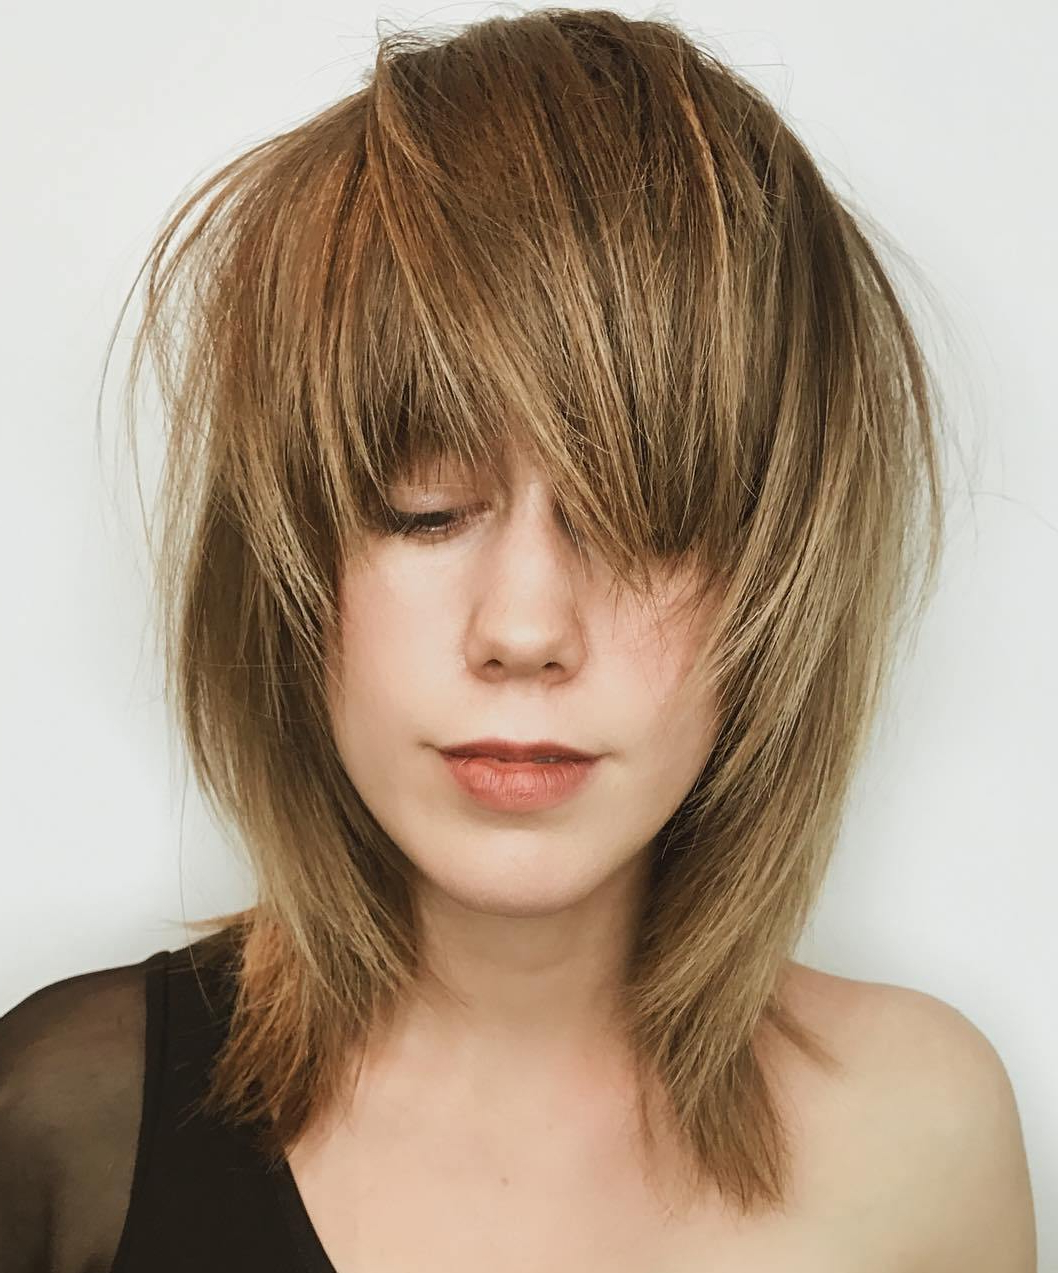 The Most Instagrammable Hairstyles With Bangs In 2019 Regarding Newest Shaggy Chestnut Medium Length Hairstyles (View 14 of 20)